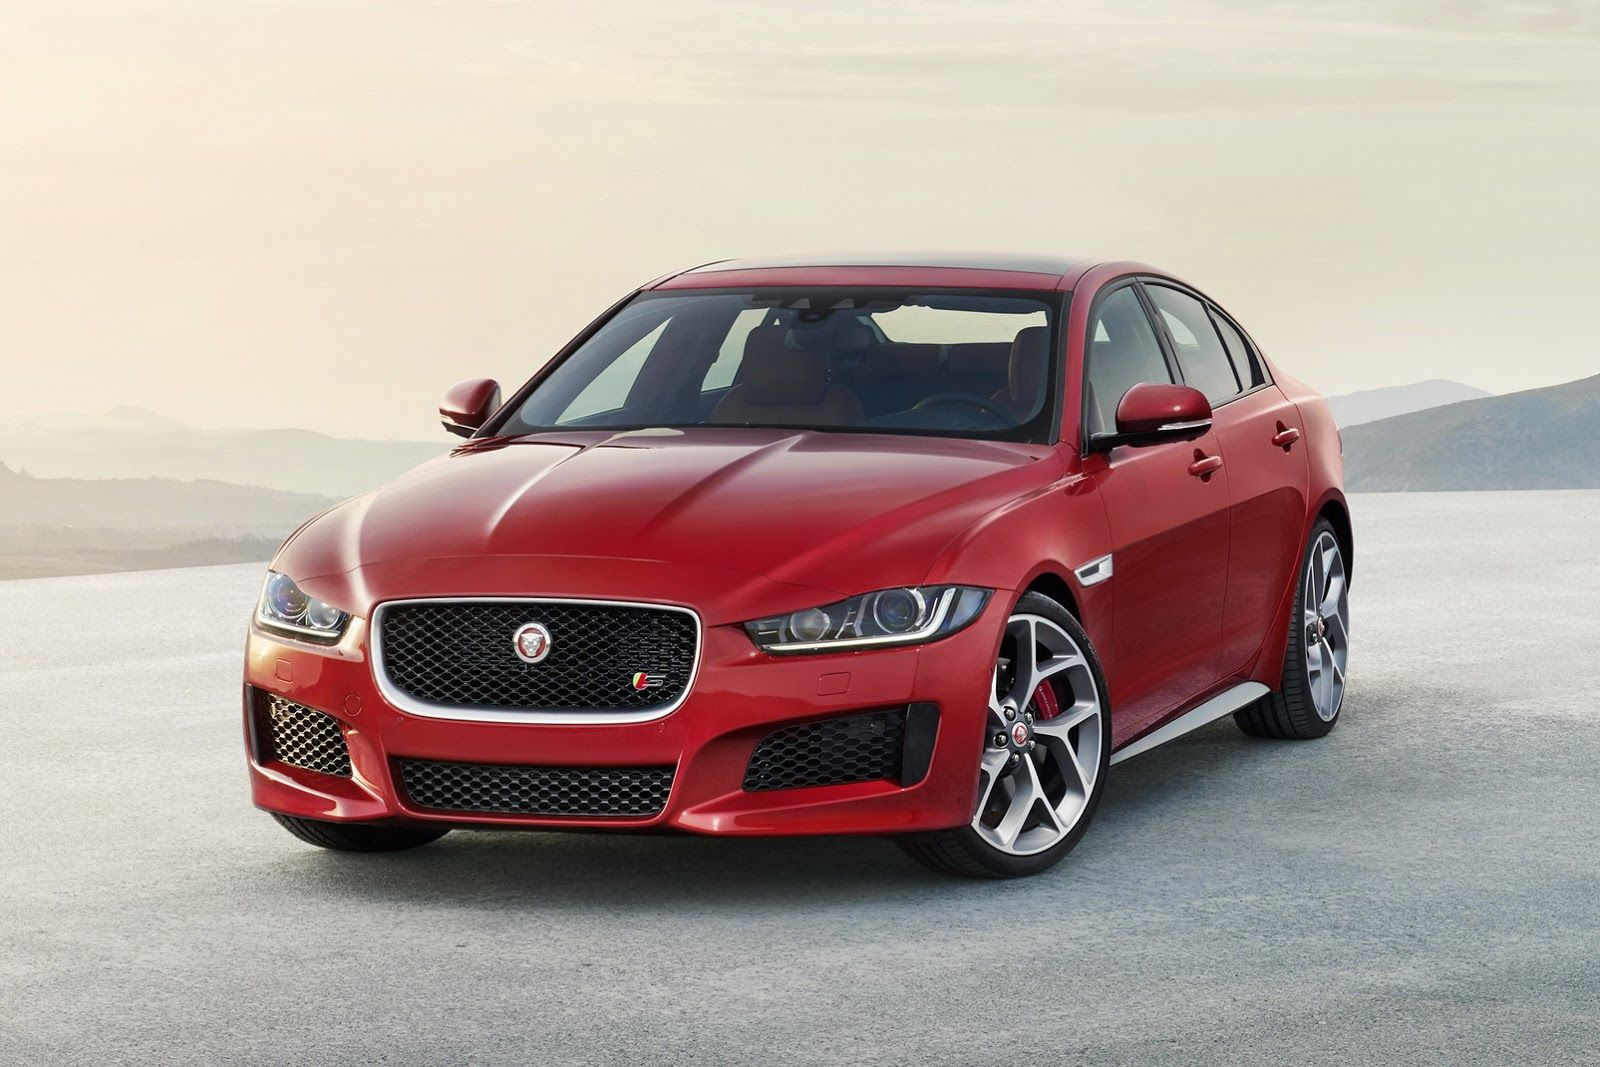 new car launches in early 20152015 Jaguar XE Sports Saloon Price 25k est On sale early 2015